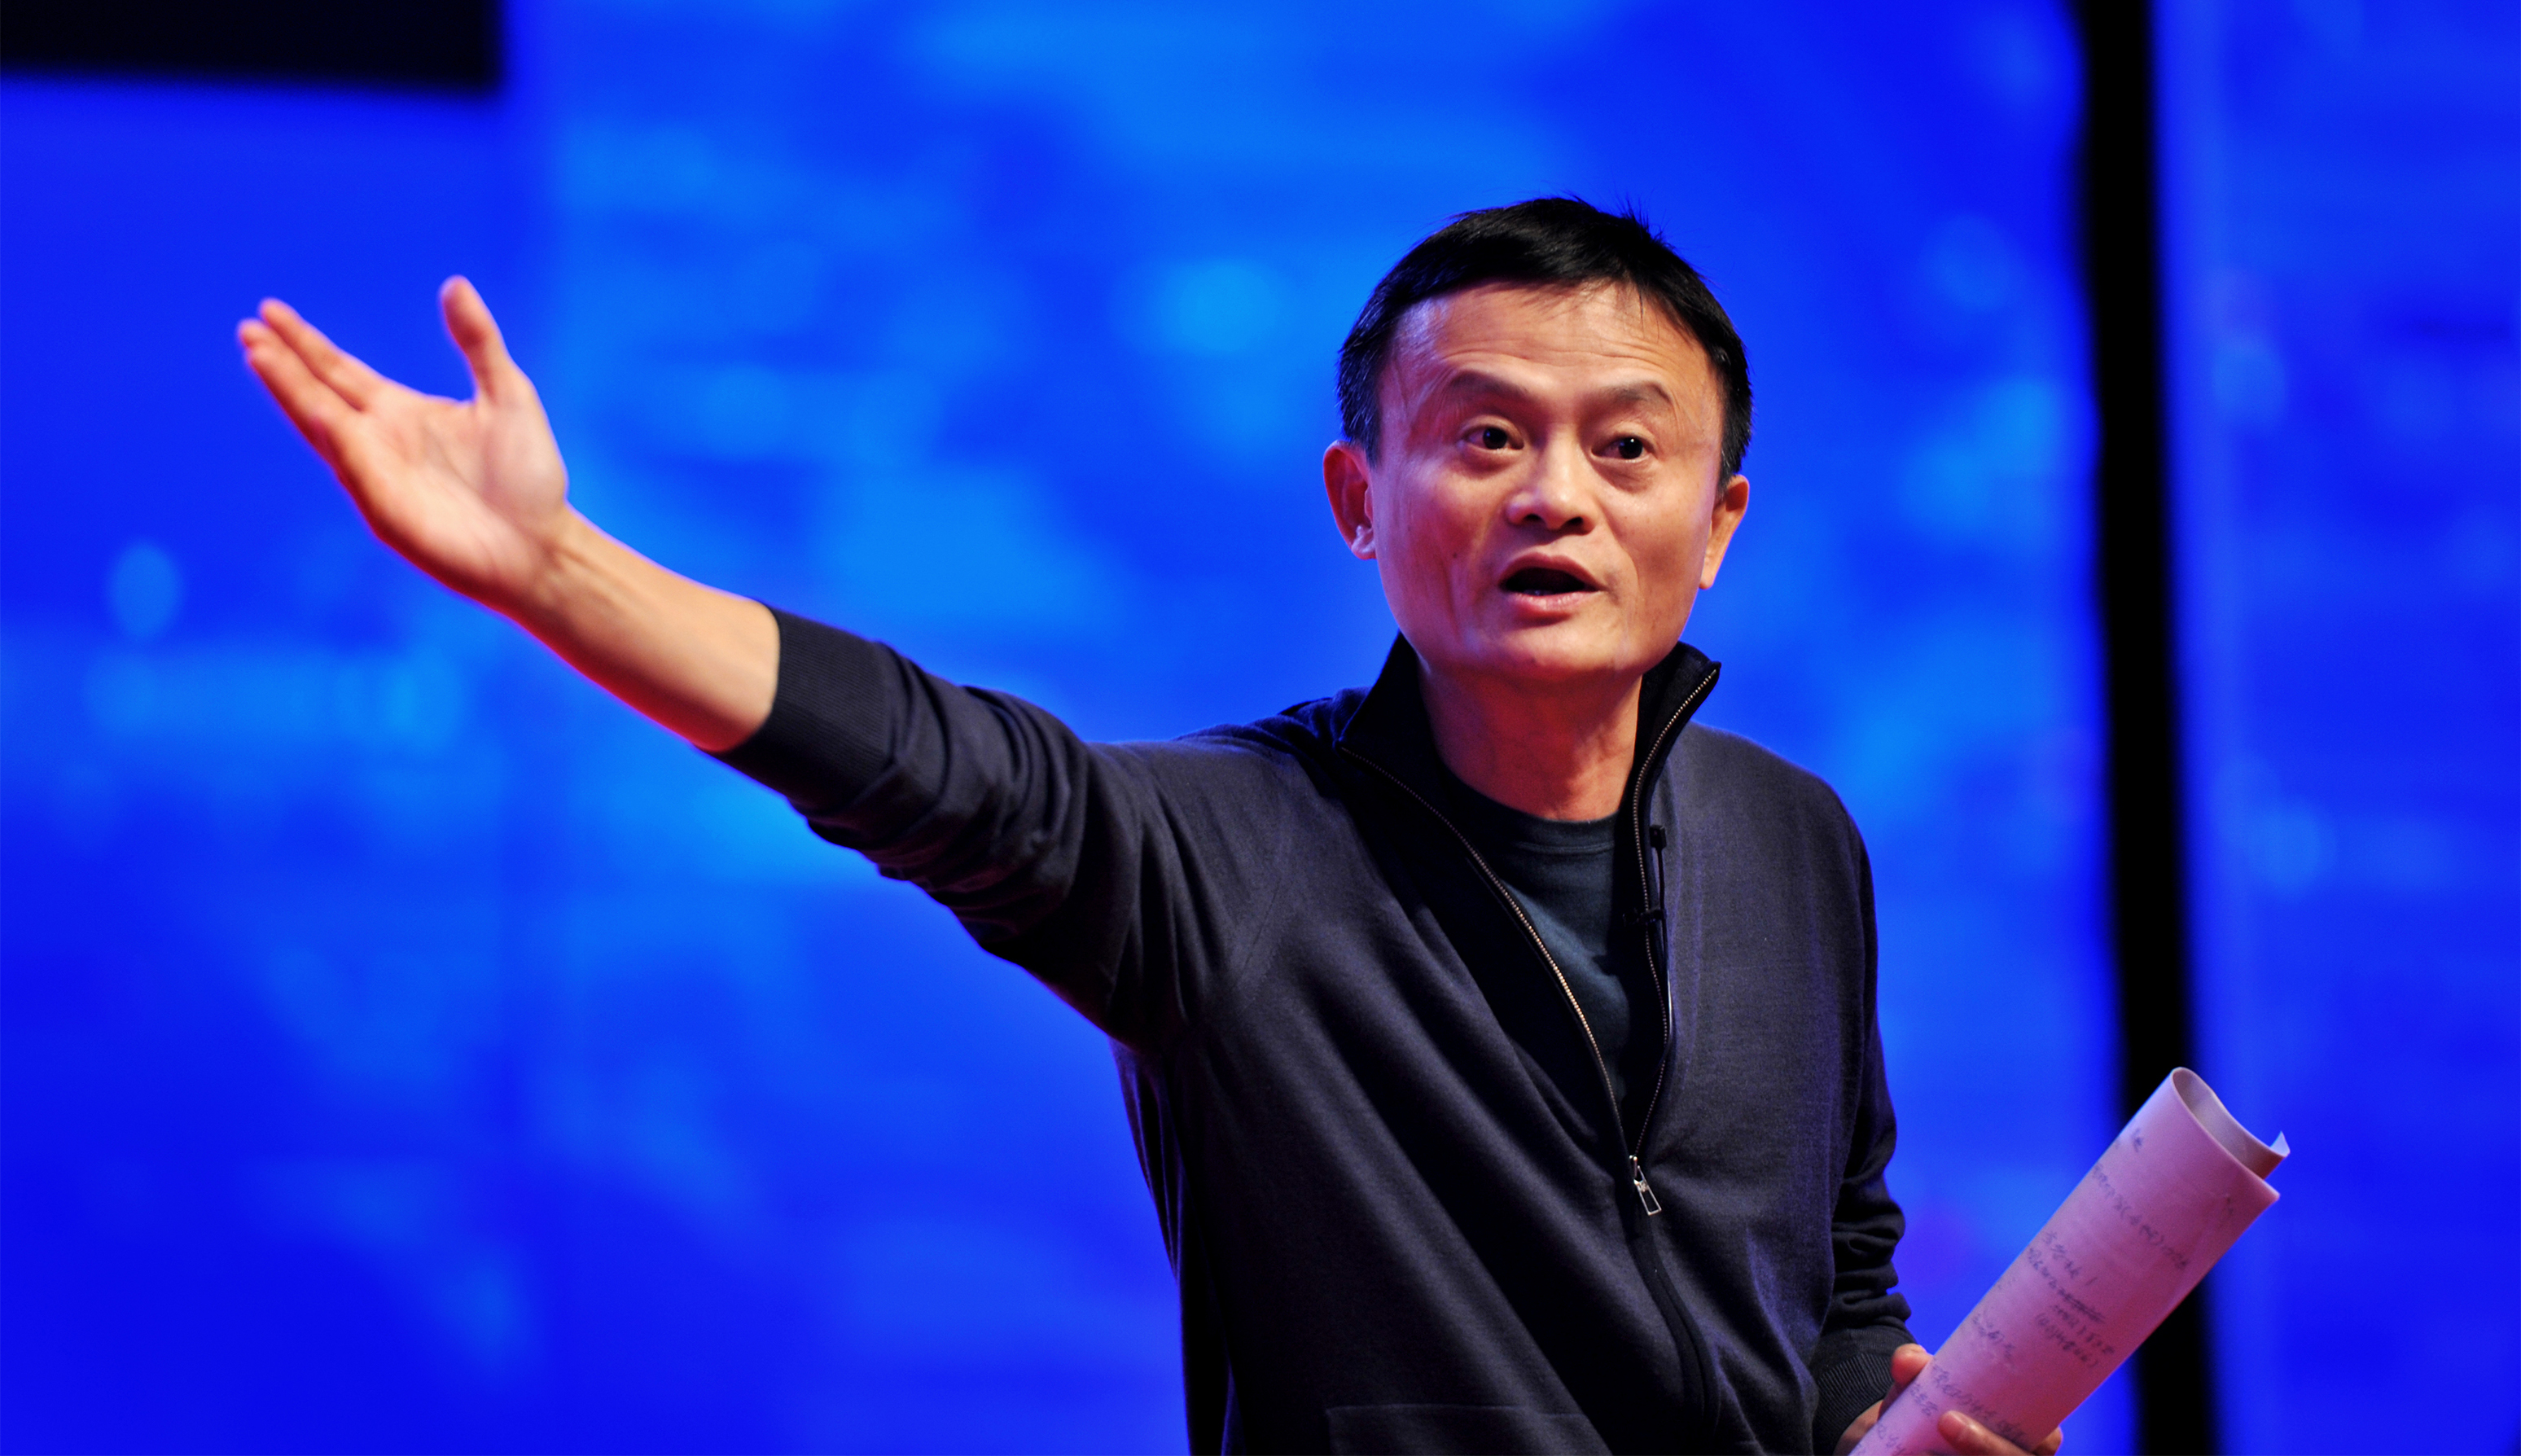 HANGZHOU, CHINA - OCTOBER 25: (CHINA OUT) Jack Ma, founder and chairman of Alibaba Group, president of the General Association of Zhejiang Entrepreneurs, makes a speech on the Zhejiang Entrepreneurs Association on October 25, 2015 in Hangzhou, Zhejiang Province of China. (Photo by ChinaFotoPress/ChinaFotoPress via Getty Images)